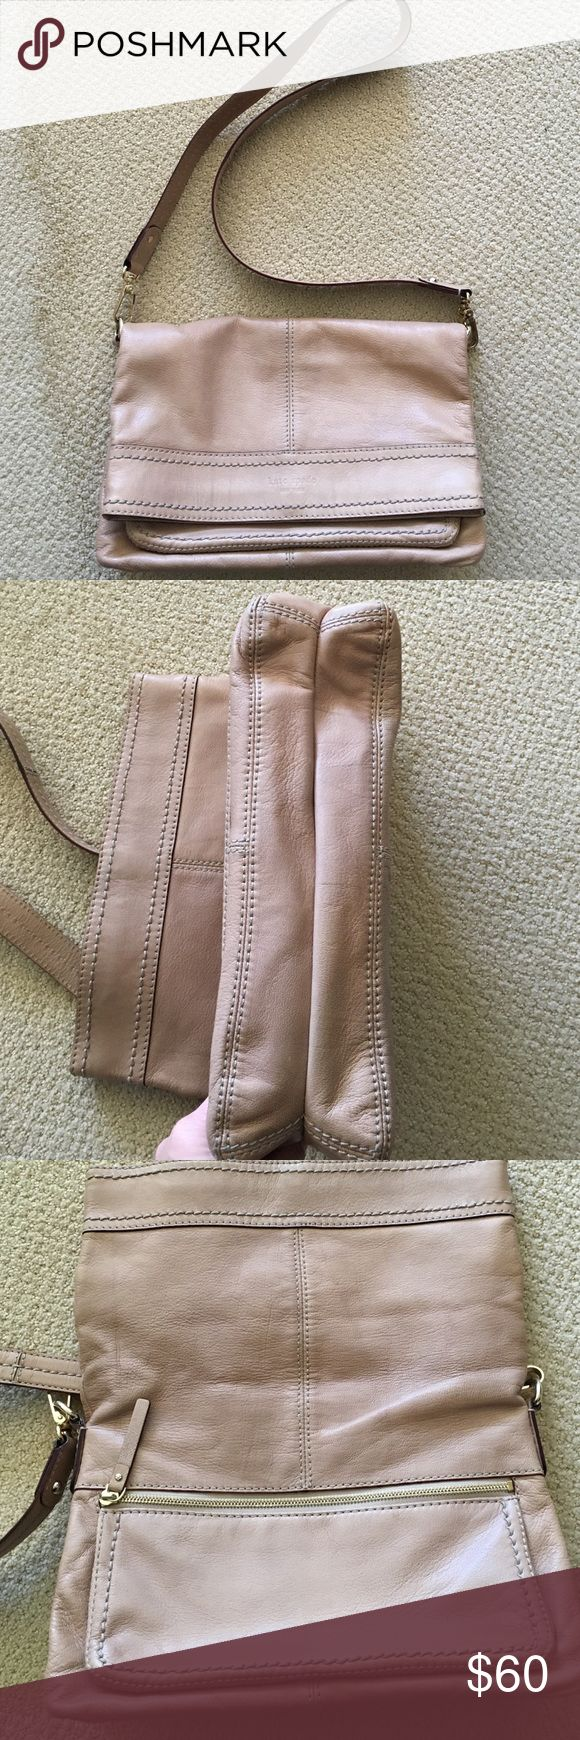 Kate Spade crossbody/over the shoulder bag Beige color Kate Spade crossbody or over the shoulder bag. Gently used and in good condition. Lots of room in the interior with pockets. There's also an additional zippered pocket under the flap for easy access. kate spade Bags Crossbody Bags